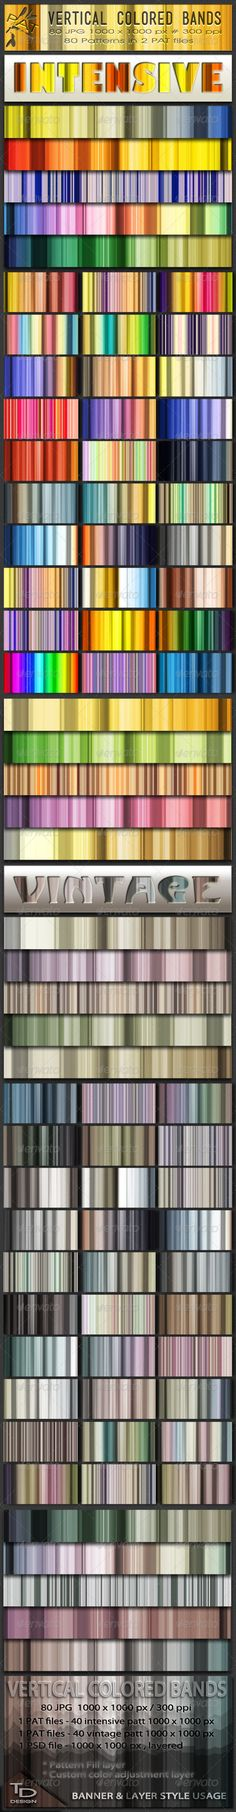 Vertical Colored Bands Patterns Set  #GraphicRiver         The Vertical Colored Bands Set contains 80 Stripes Patterns in 2 Styles – intensive and vintage colors. The Intensive color patterns have combinations of 4-5 fresh colors. Vintage look patterns are made in low saturation colors. You can use these patterns in banners and layer style.    - 40 JPG images Intensive colored bands 1000 x 1000 pixels with resolution 300 ppi - 40 JPG images Vintage colored bands 1000 x 1000 pixels with…